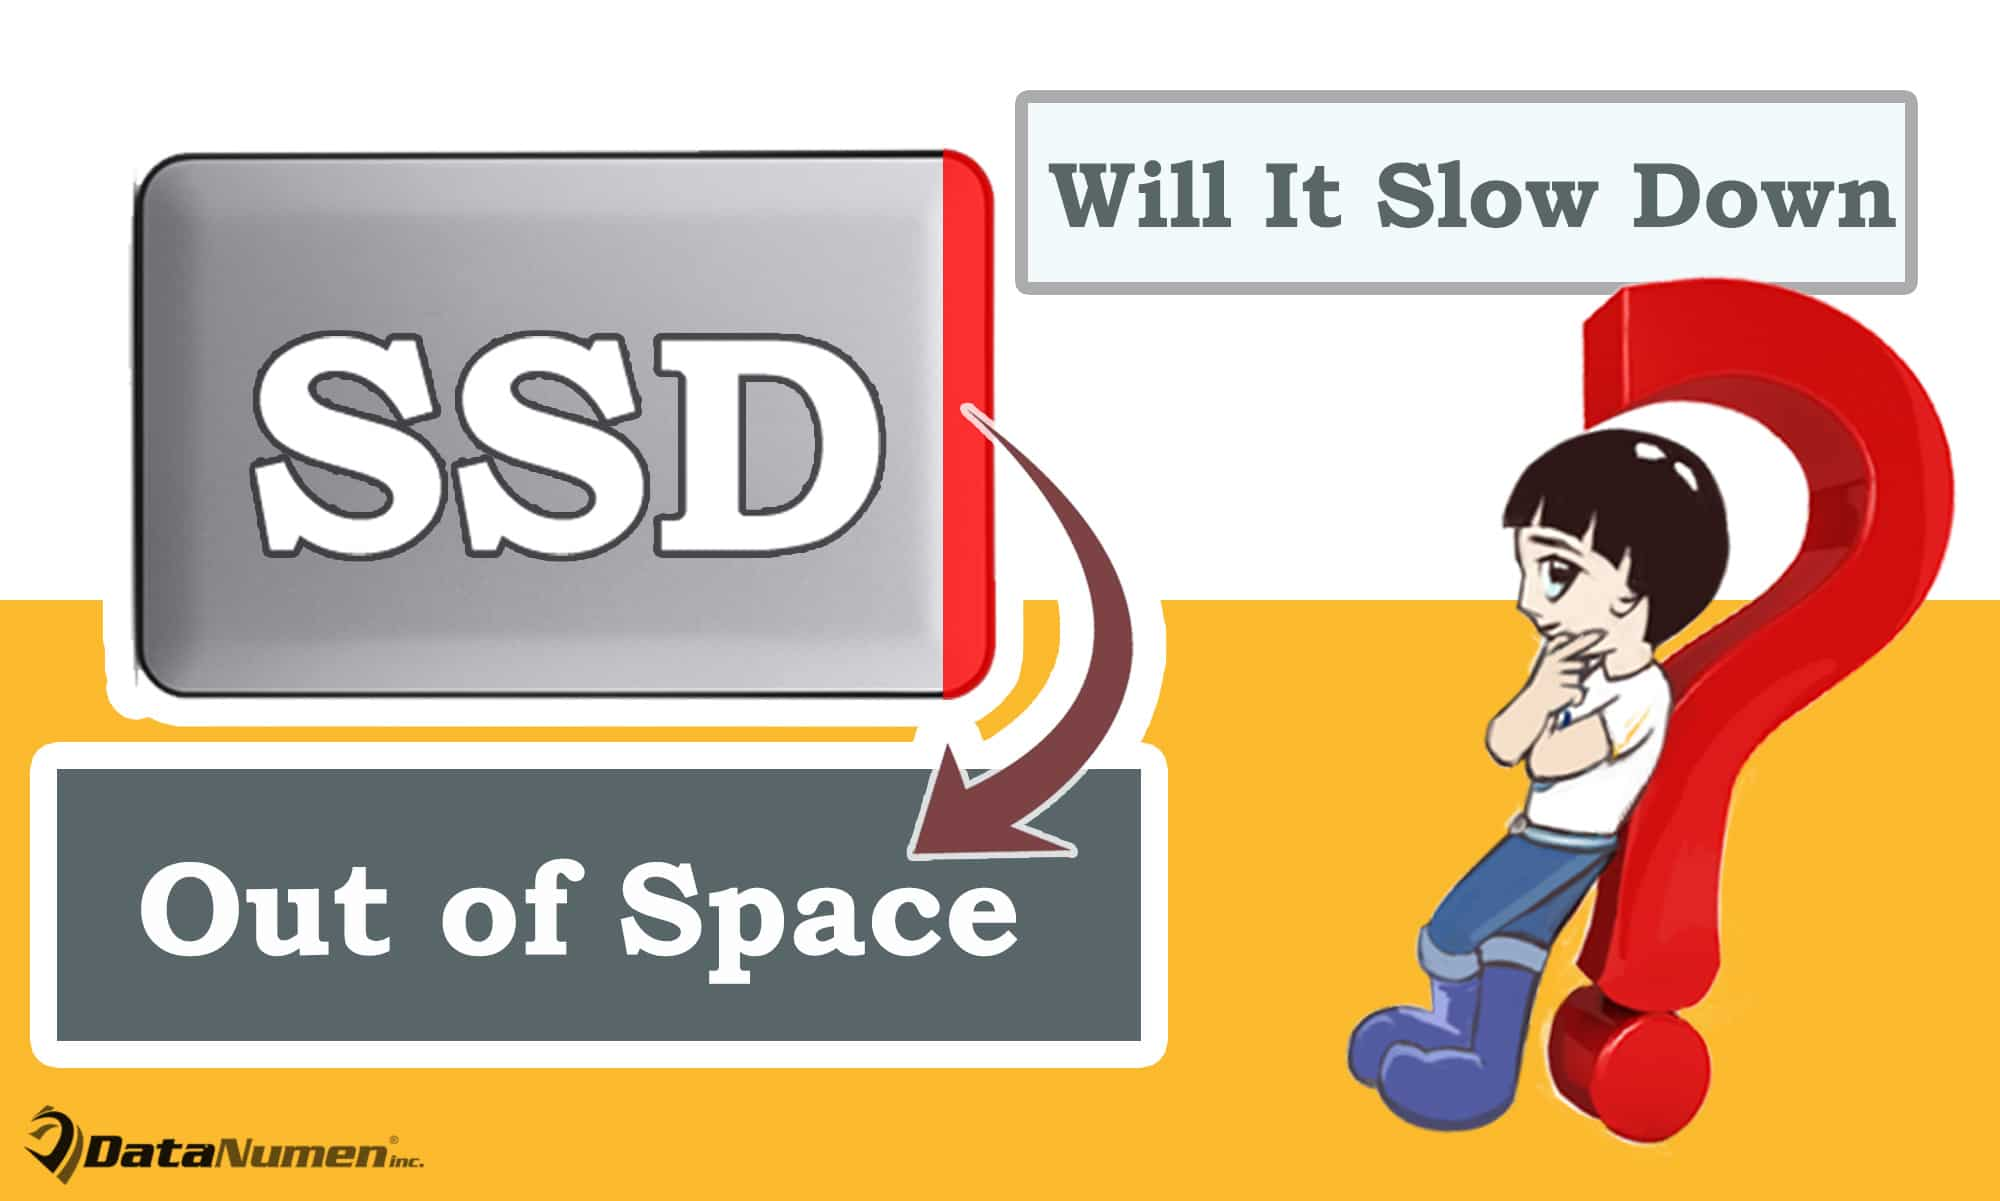 Will Solid State Drive (SSD) Slow Down when Out of Space?